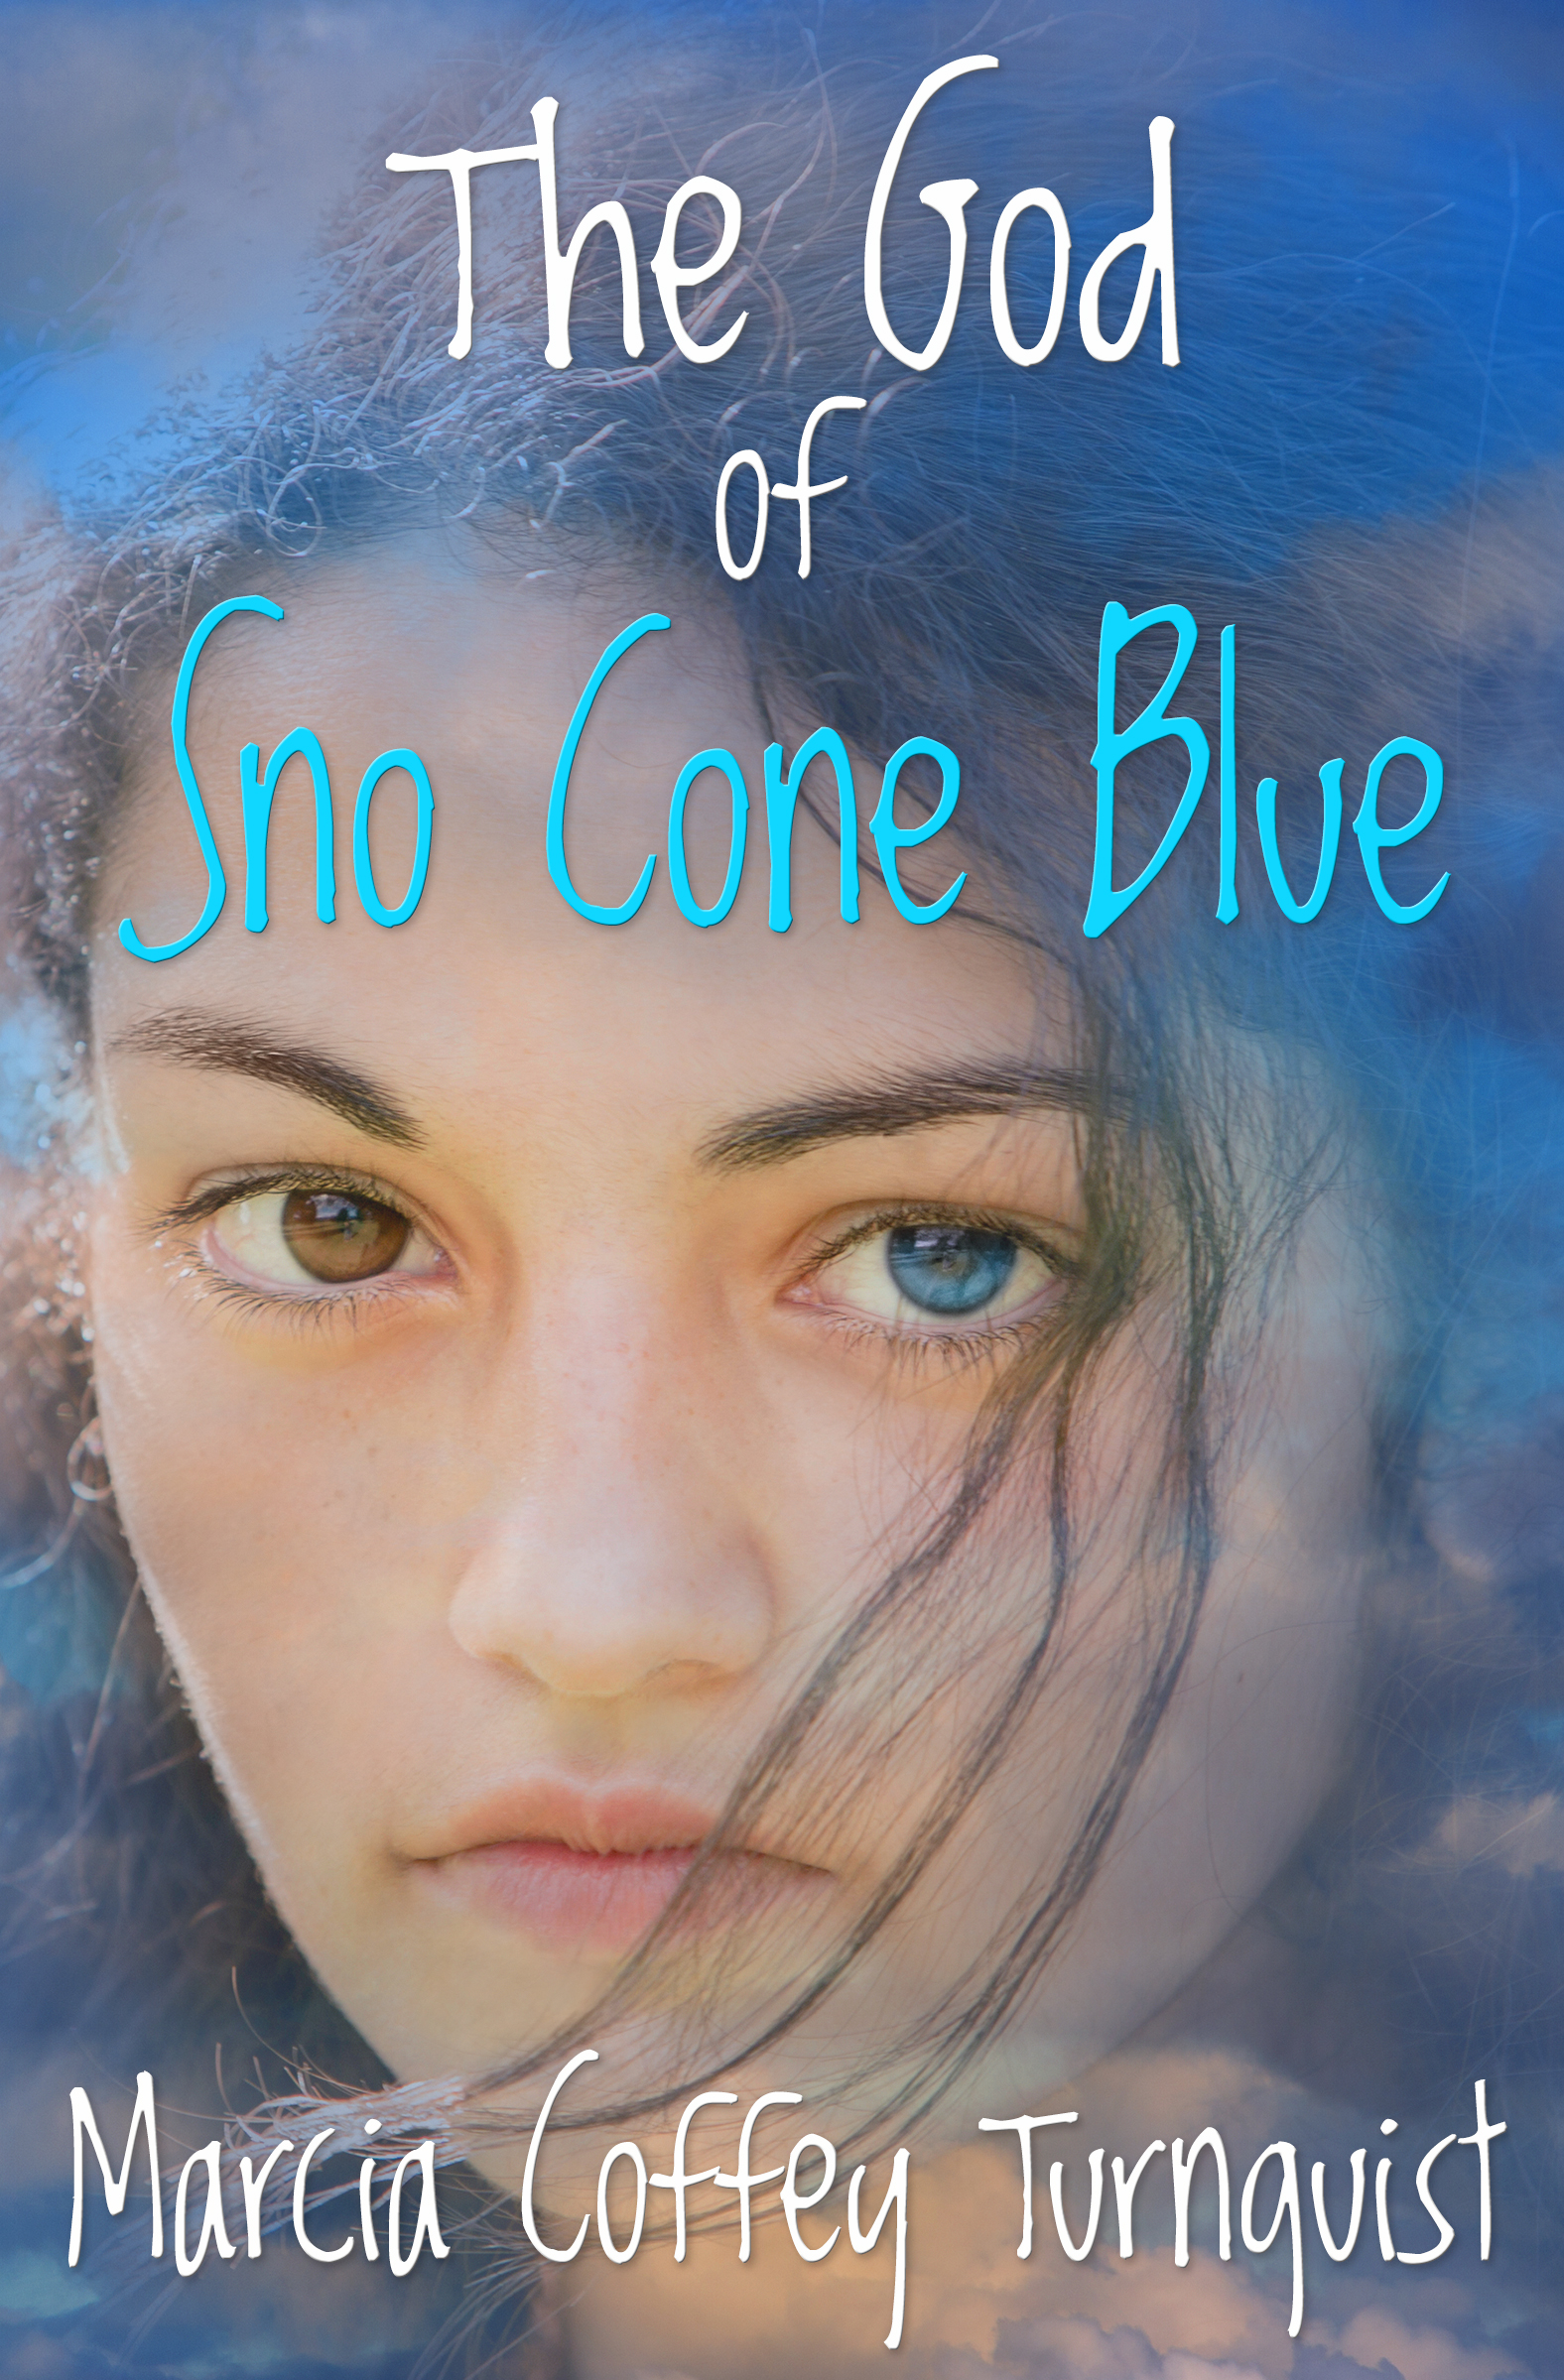 Cover of the Novel The God of Sno Cone Blue.